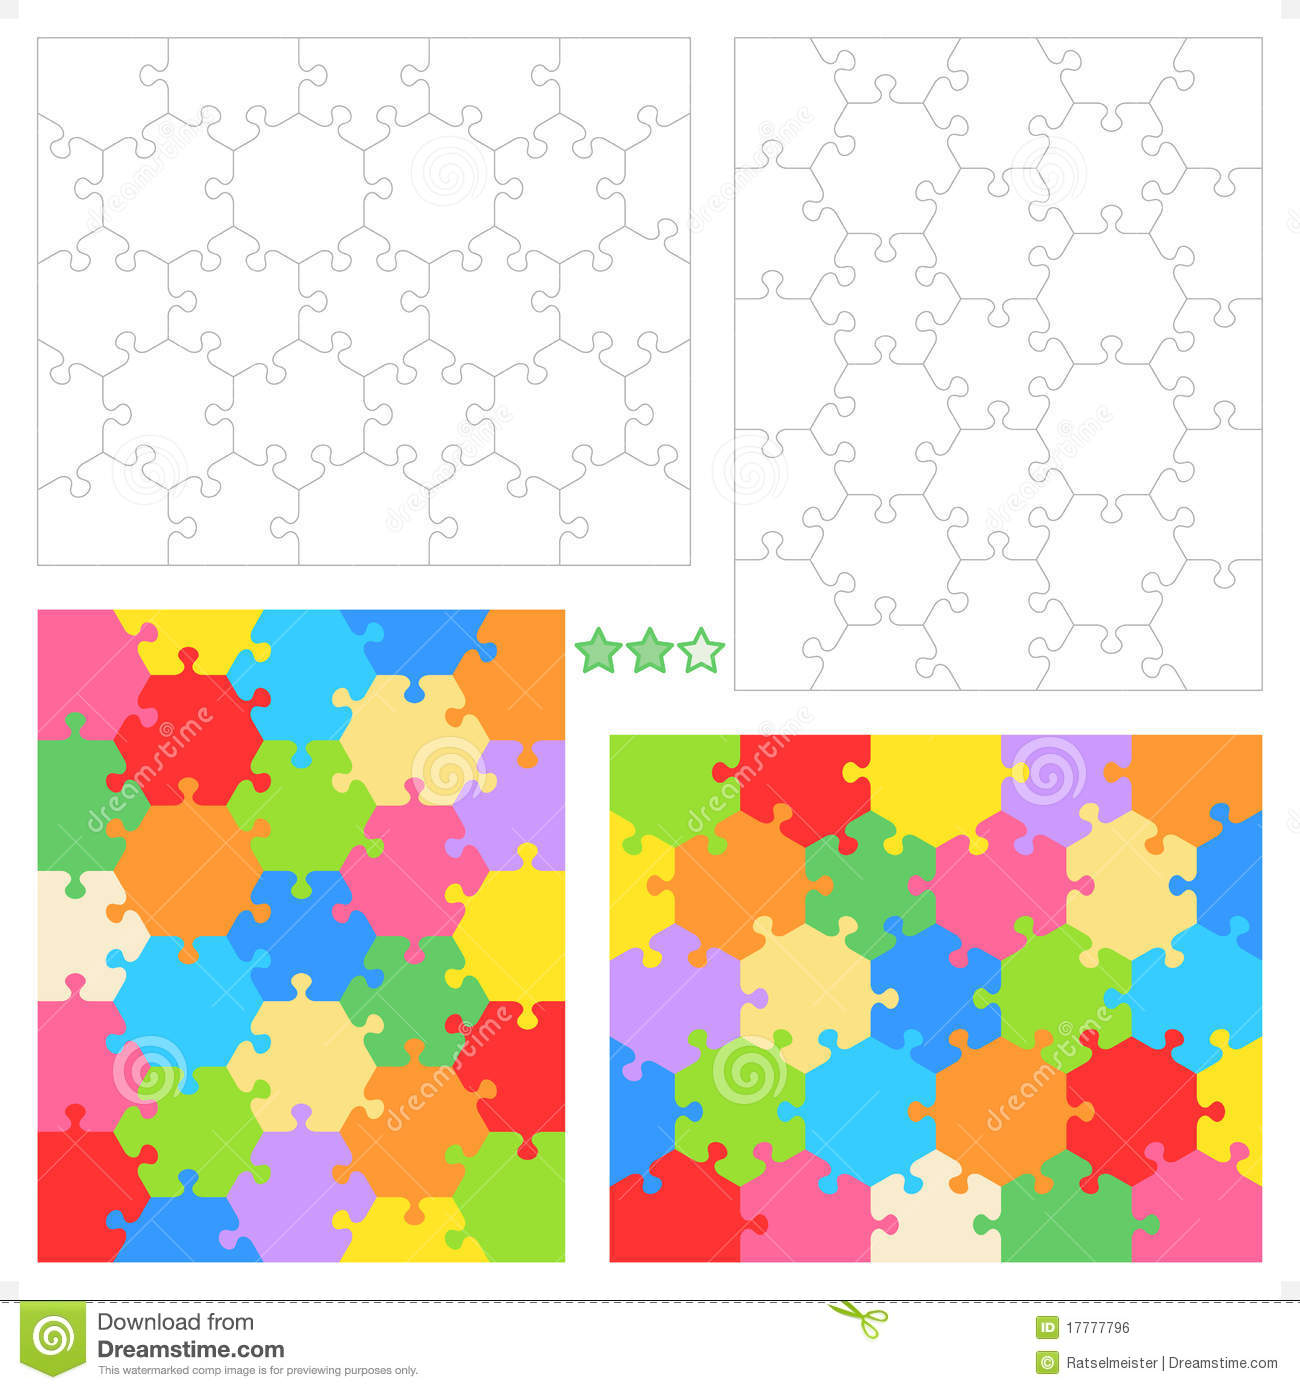 hexagonal jigsaw puzzles royalty free stock image image 17777796